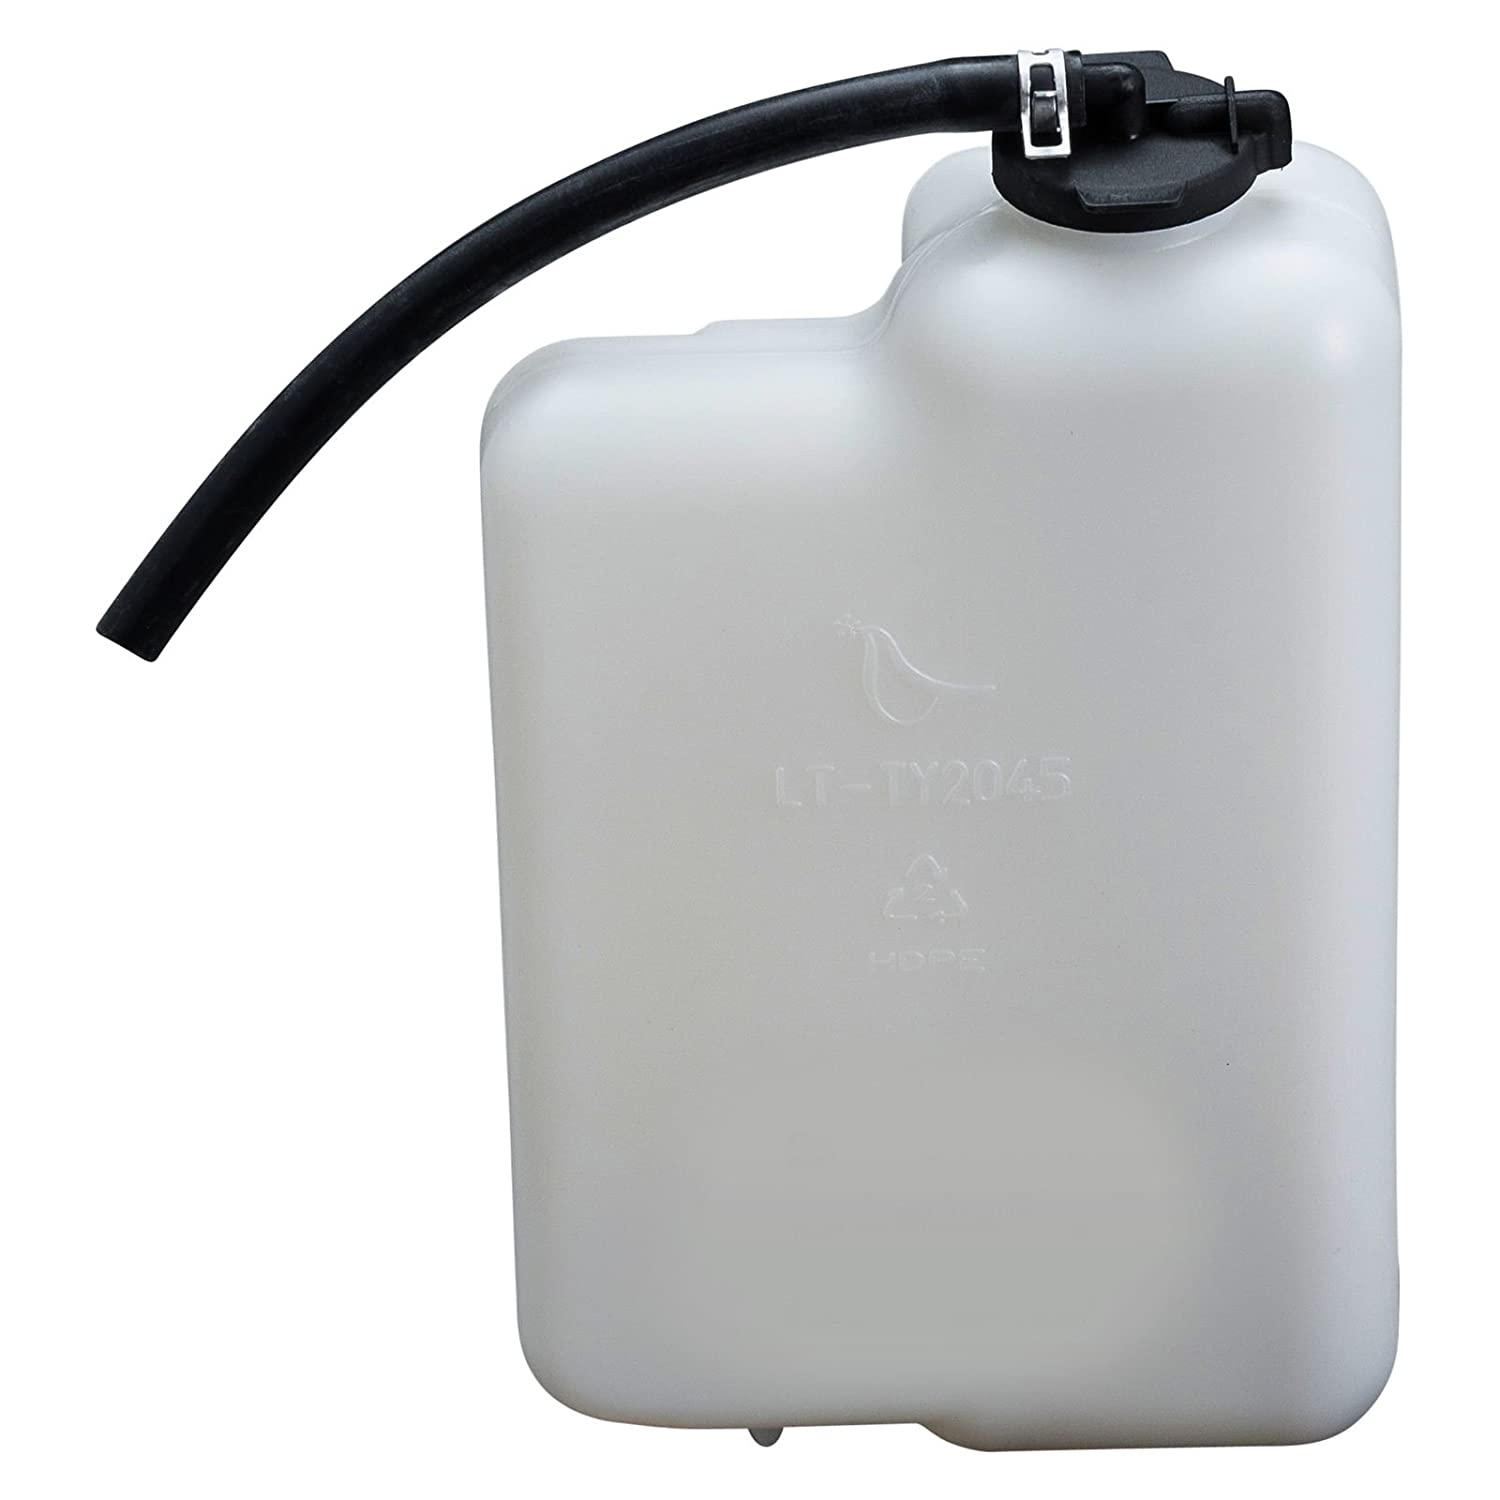 Coolant Tank Reservoir for 1995-2004 Toyota Tacoma fits 164700C010 TO3014108 Parts Galaxy